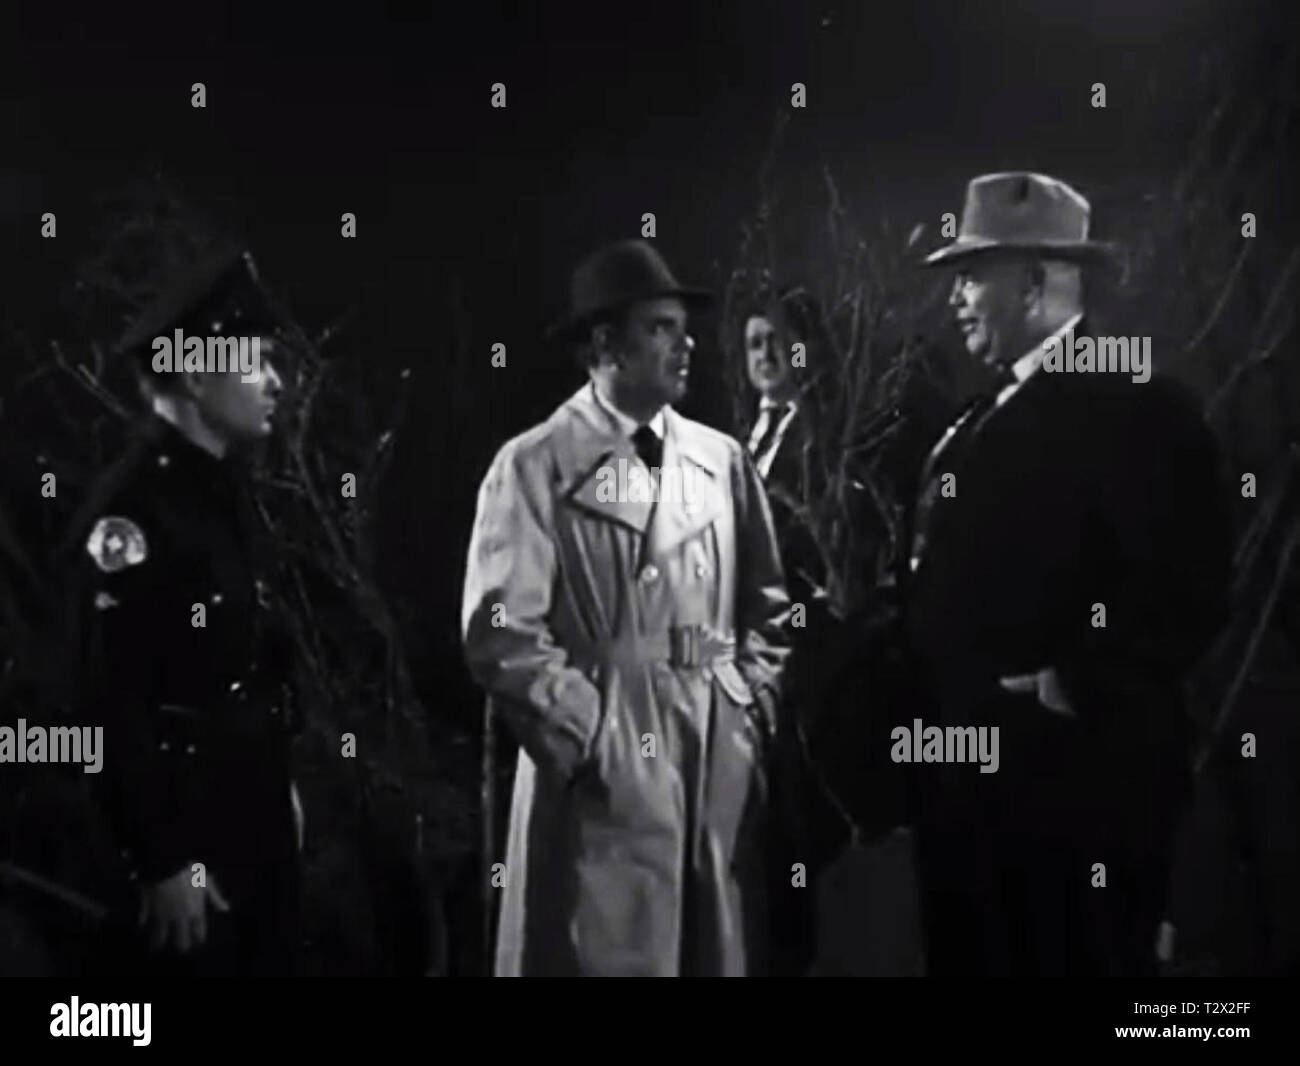 Tor Johnson in Plan 9 from Outer Space by Ed Wood - Stock Image